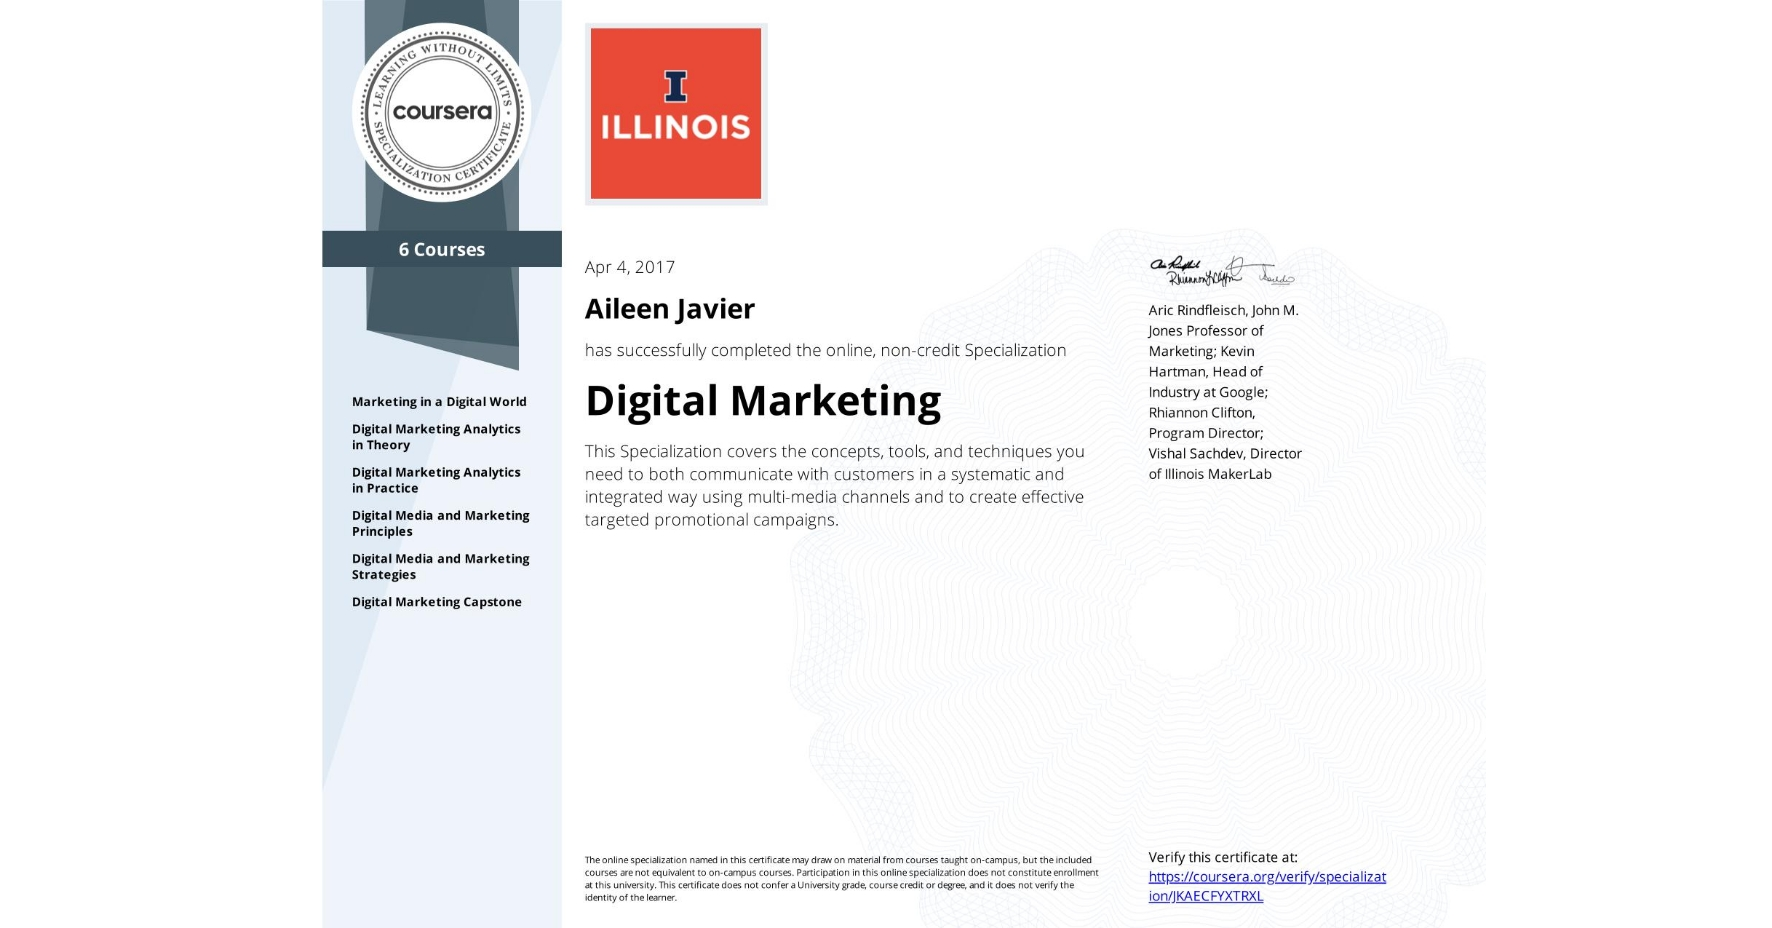 View certificate for Aileen Javier, Digital Marketing, offered through Coursera. This Specialization covers the concepts, tools, and techniques you need to both communicate with customers in a systematic and integrated way using multi-media channels and to create effective targeted promotional campaigns.